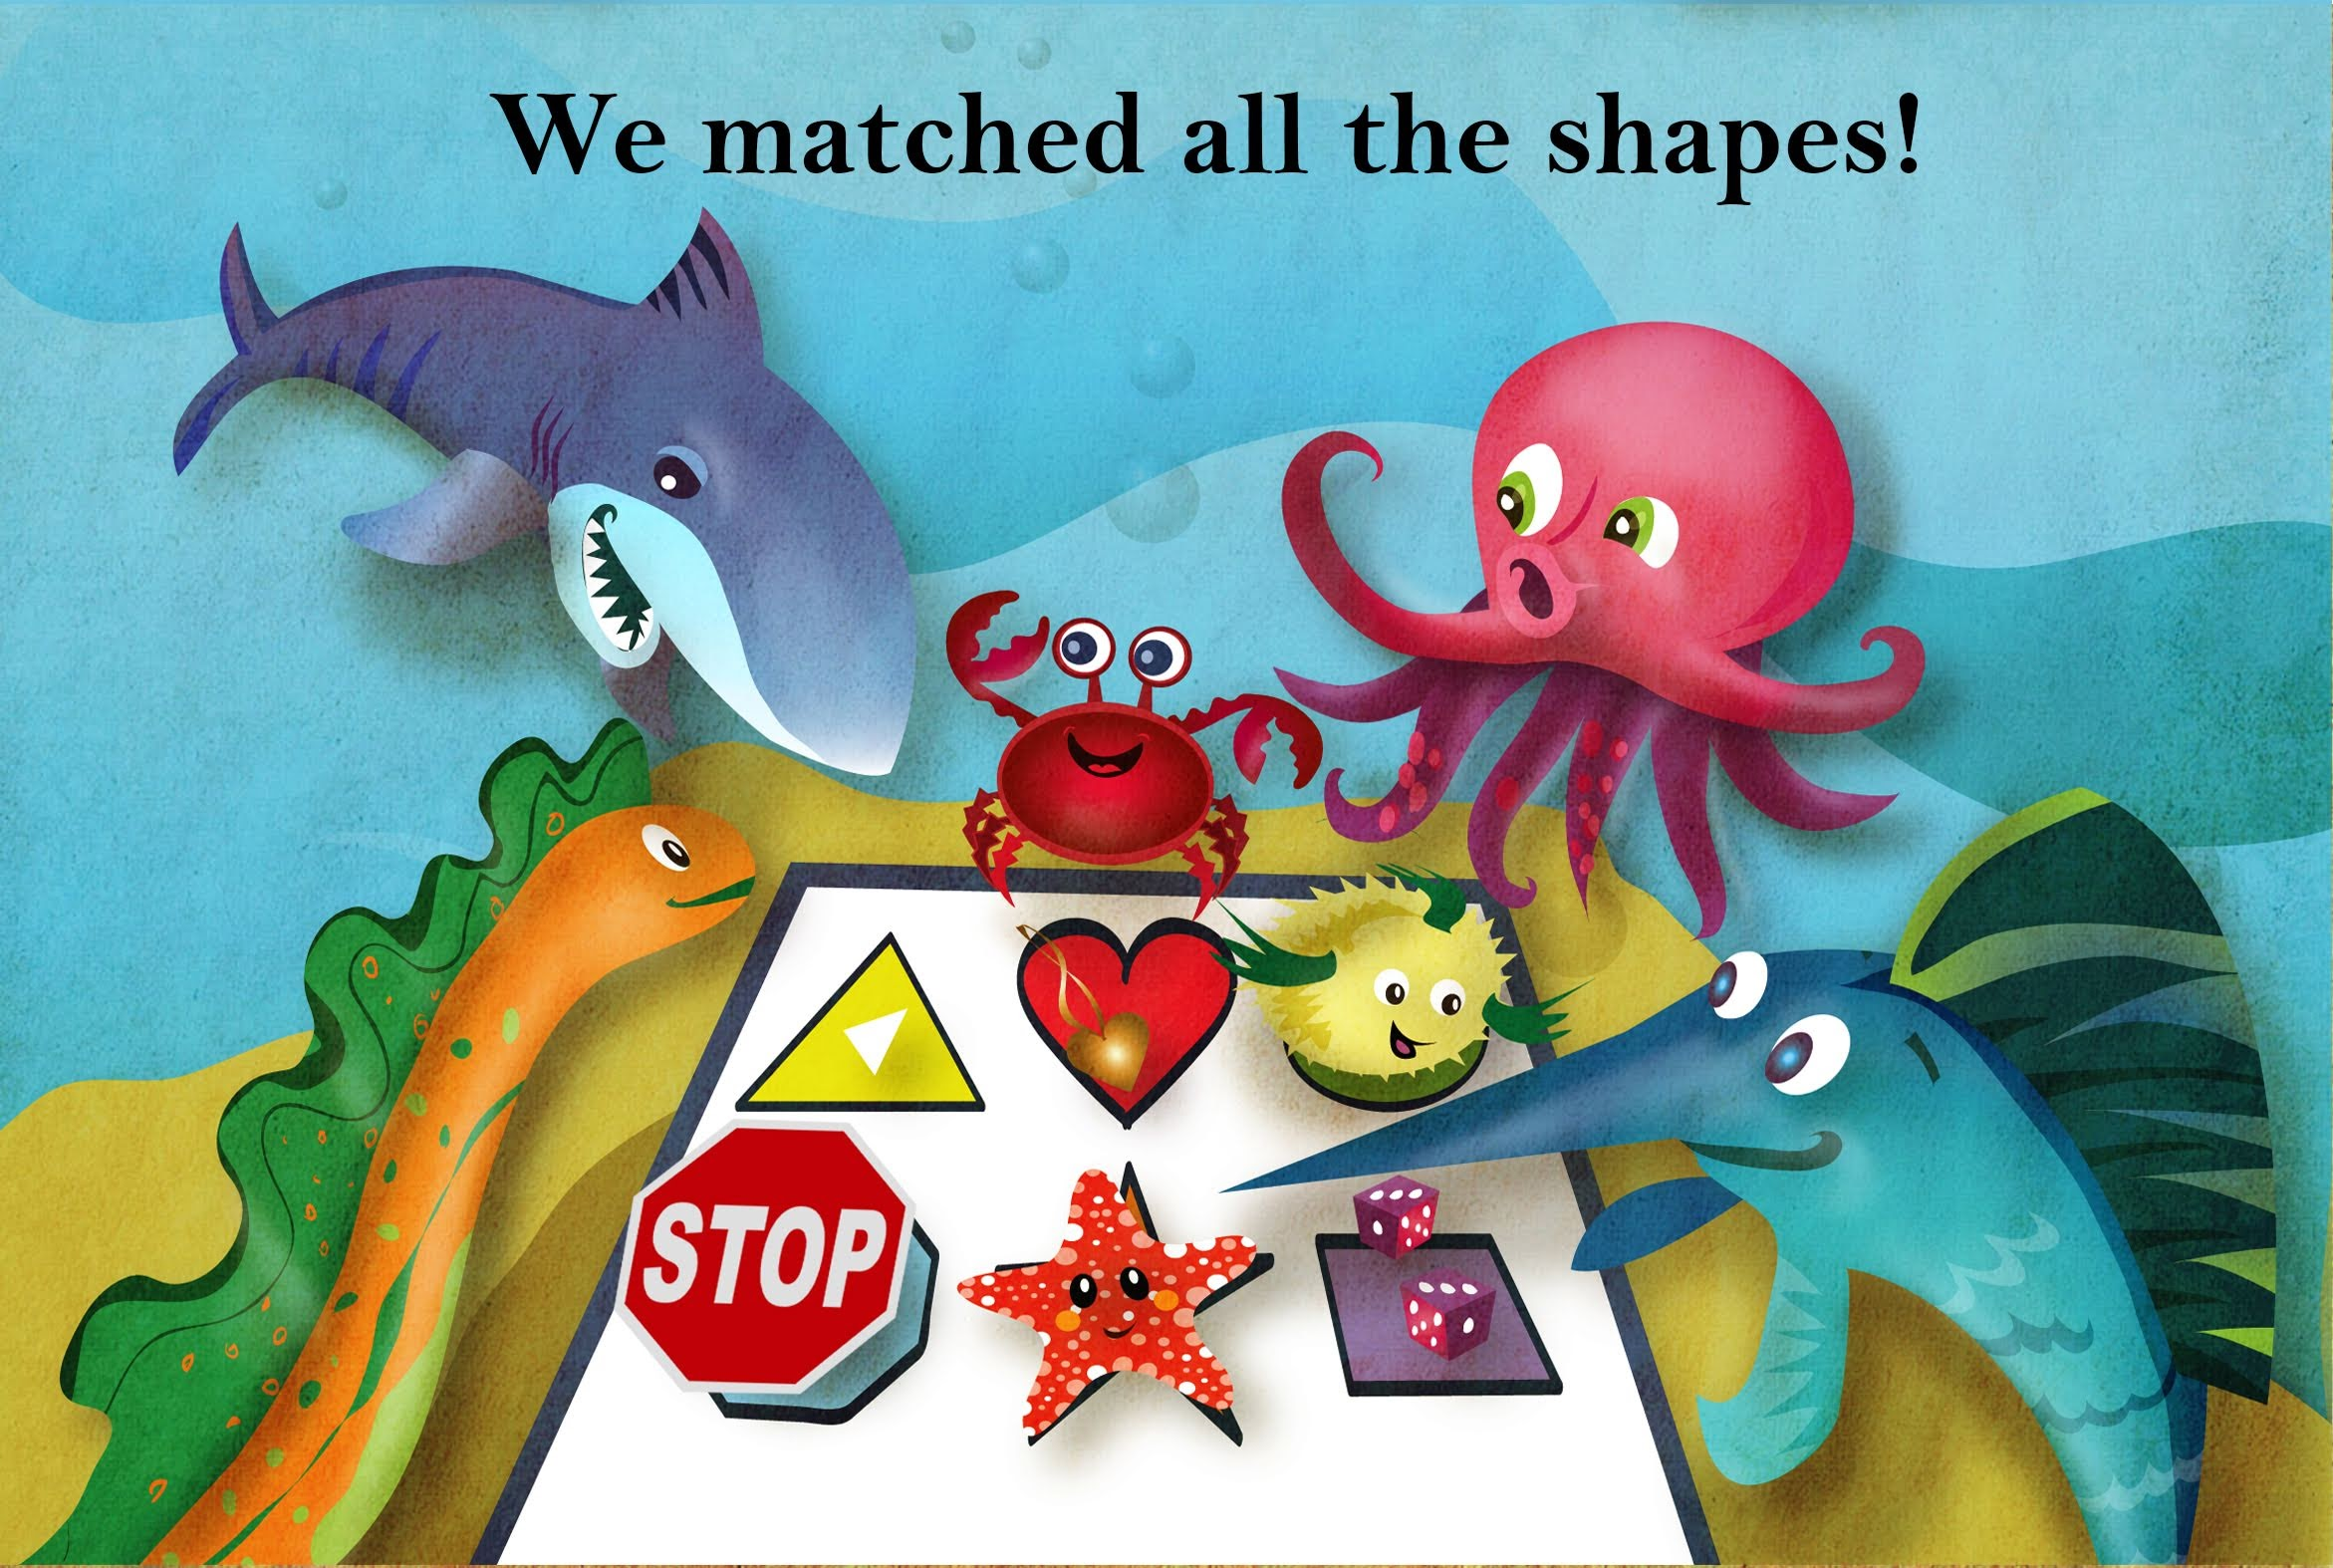 slide 5 Educational Childrens Stories - Oliver's Birthday, by Bonnie Lady Lee. [Excerpt] We matched all the shapes.